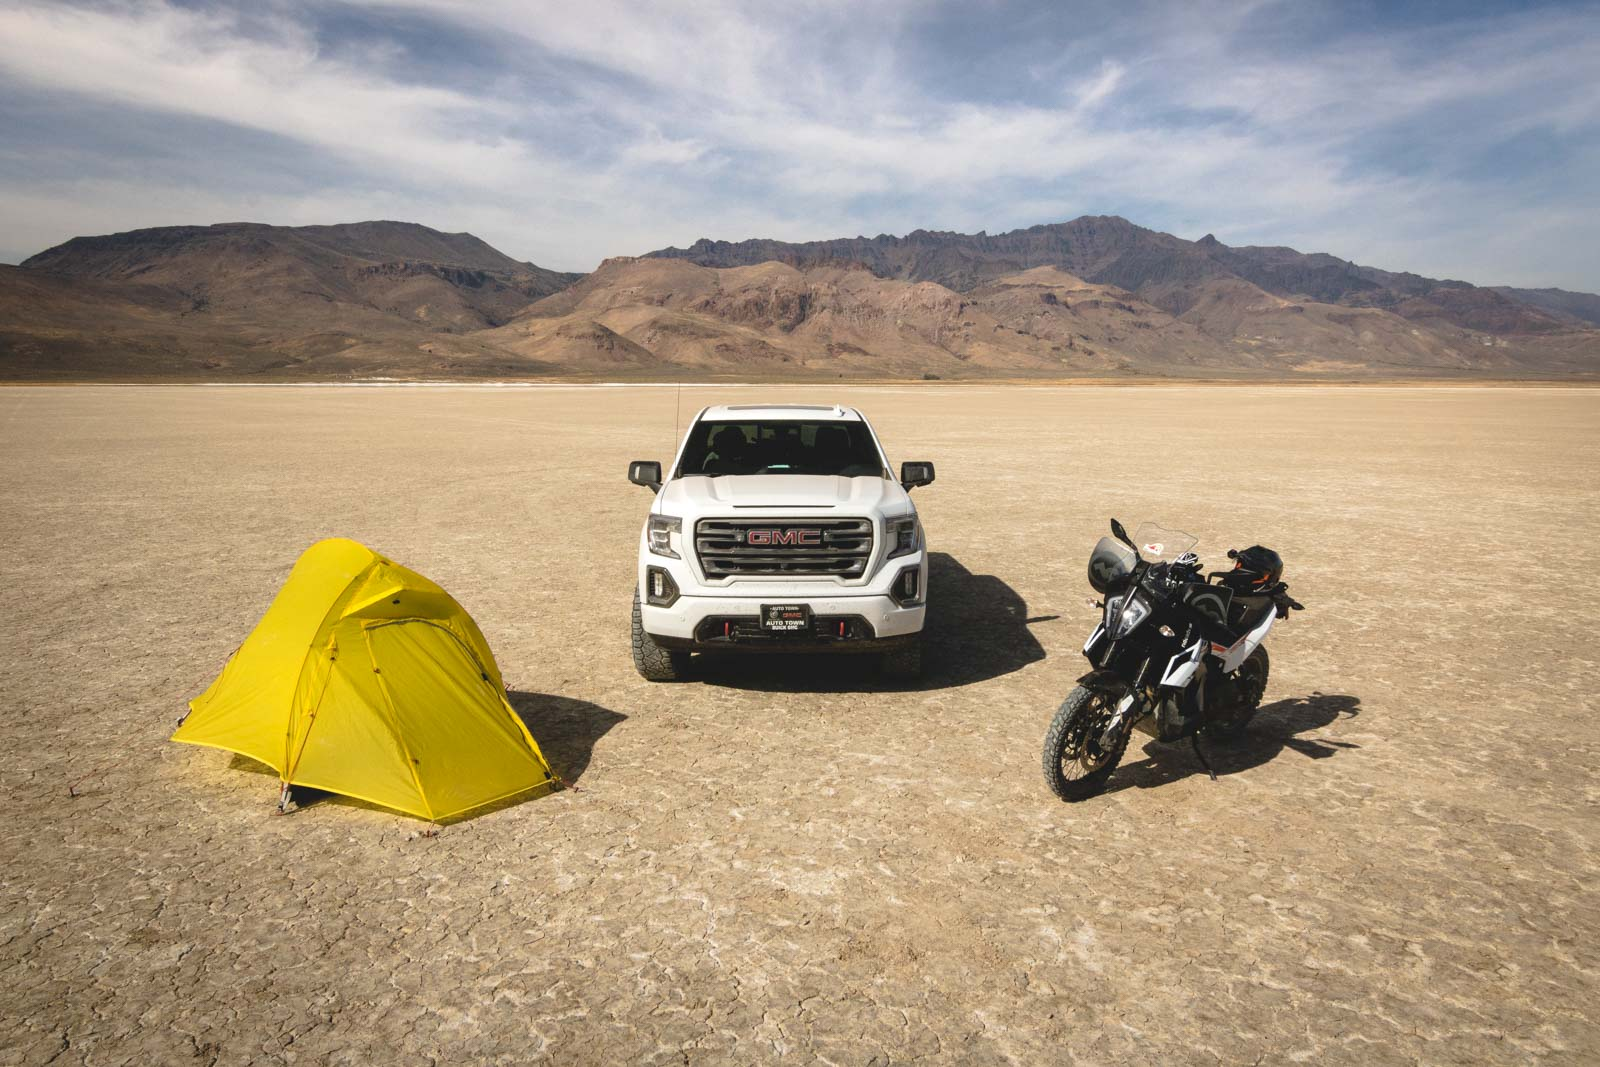 Camping out at  Alvord Desert with the new KTM 790 Adventure